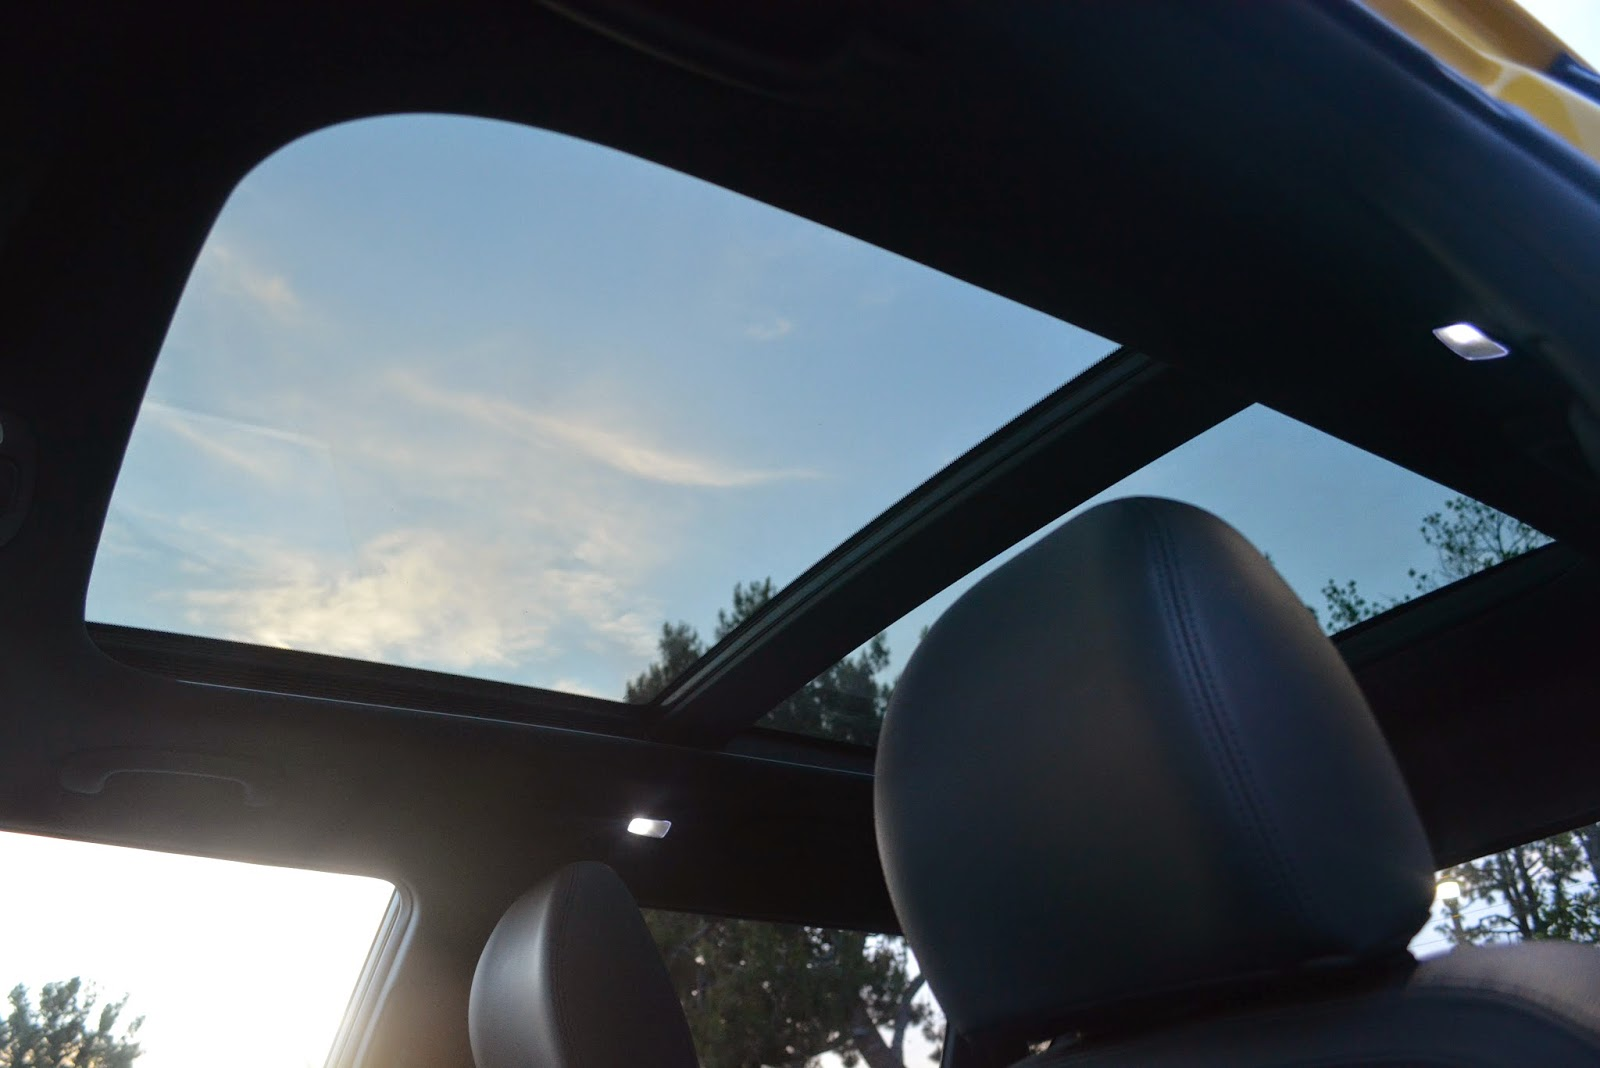 I Love That The Awesome Panoramic Sunroof Found On Kia Optima Has Finally Come To Soul Imagine Looking At Stars Or Rain